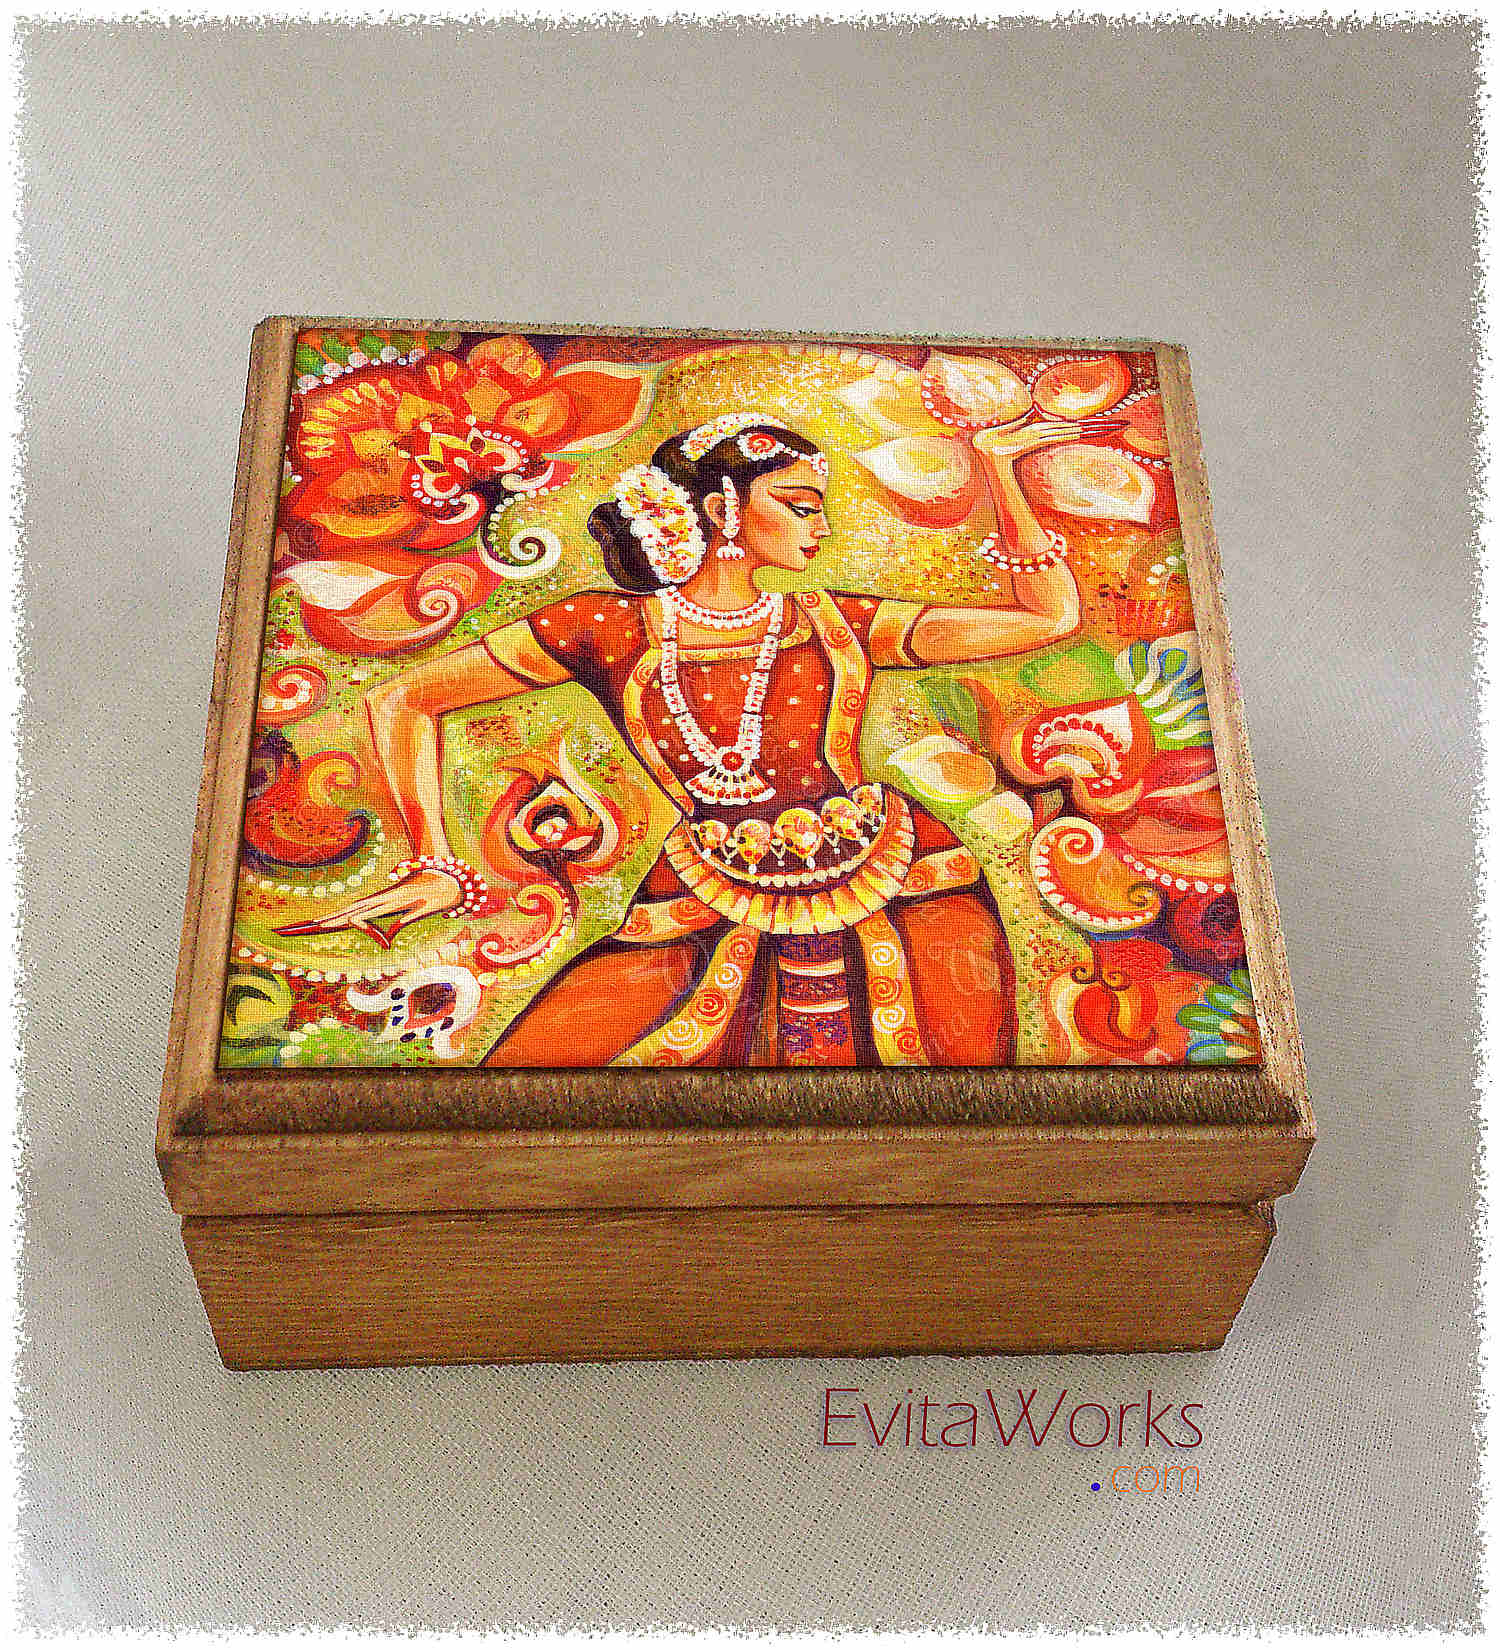 India Boxsq ~ EvitaWorks